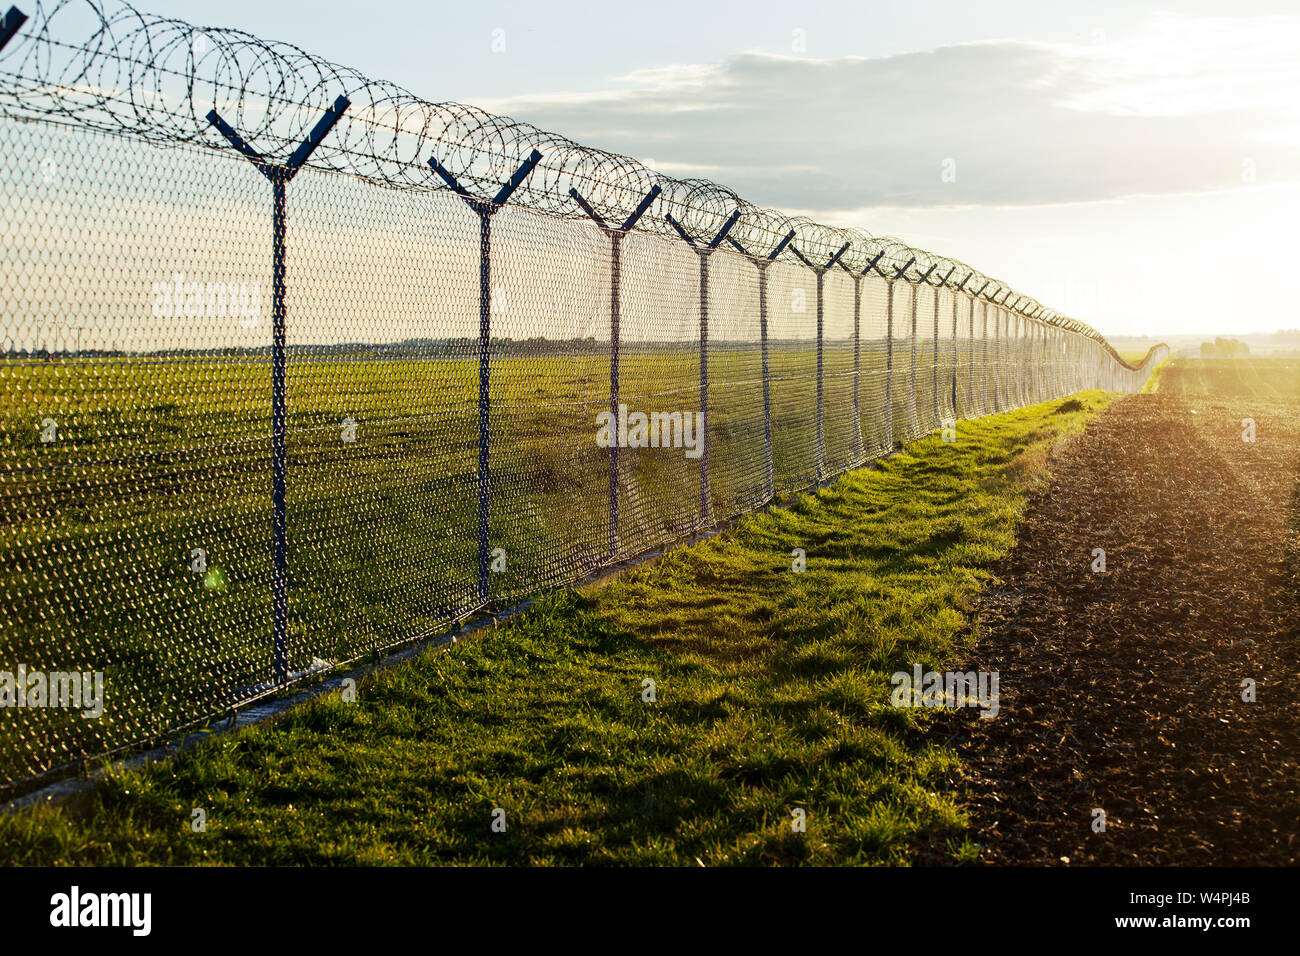 Immigation border barrier Stock Photo